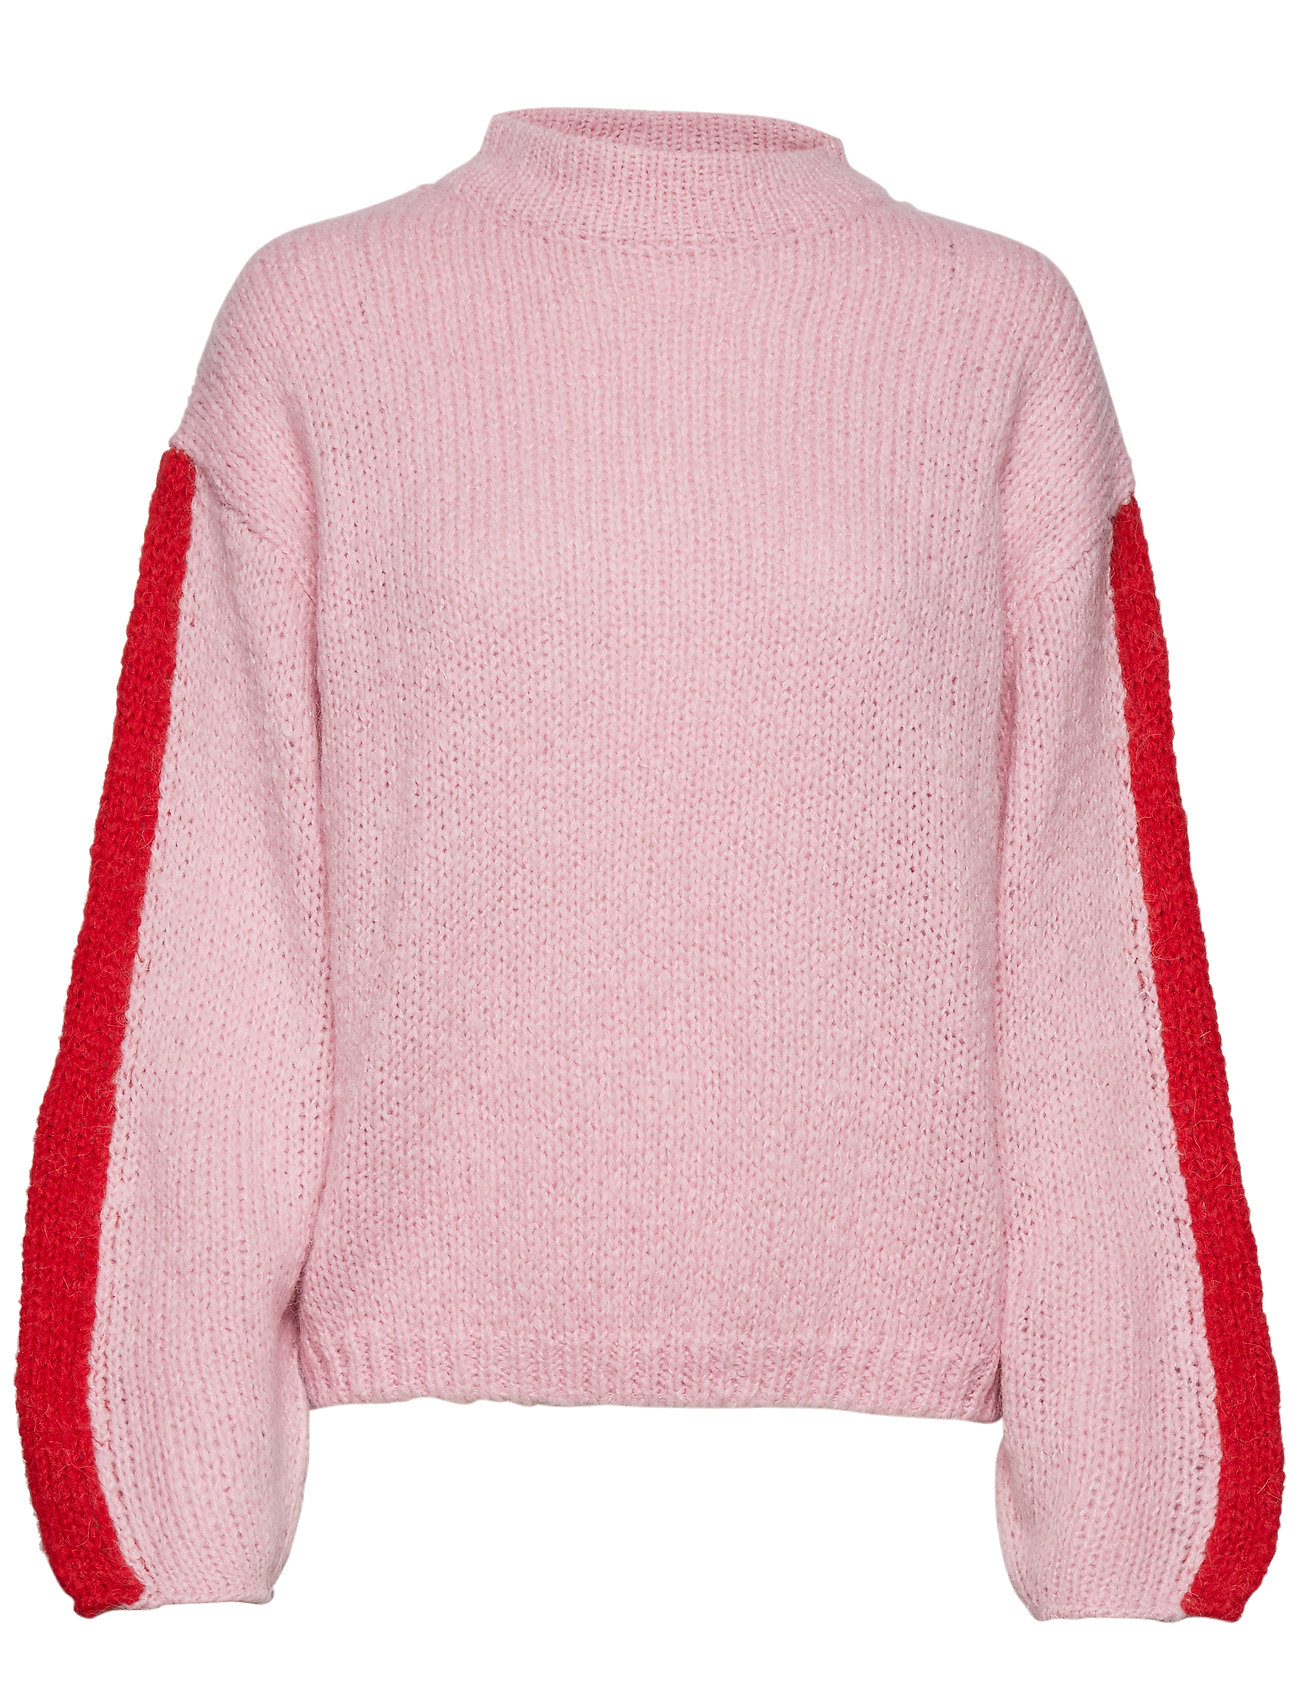 Lee Jeans CHUNKY KNIT - FROST PINK